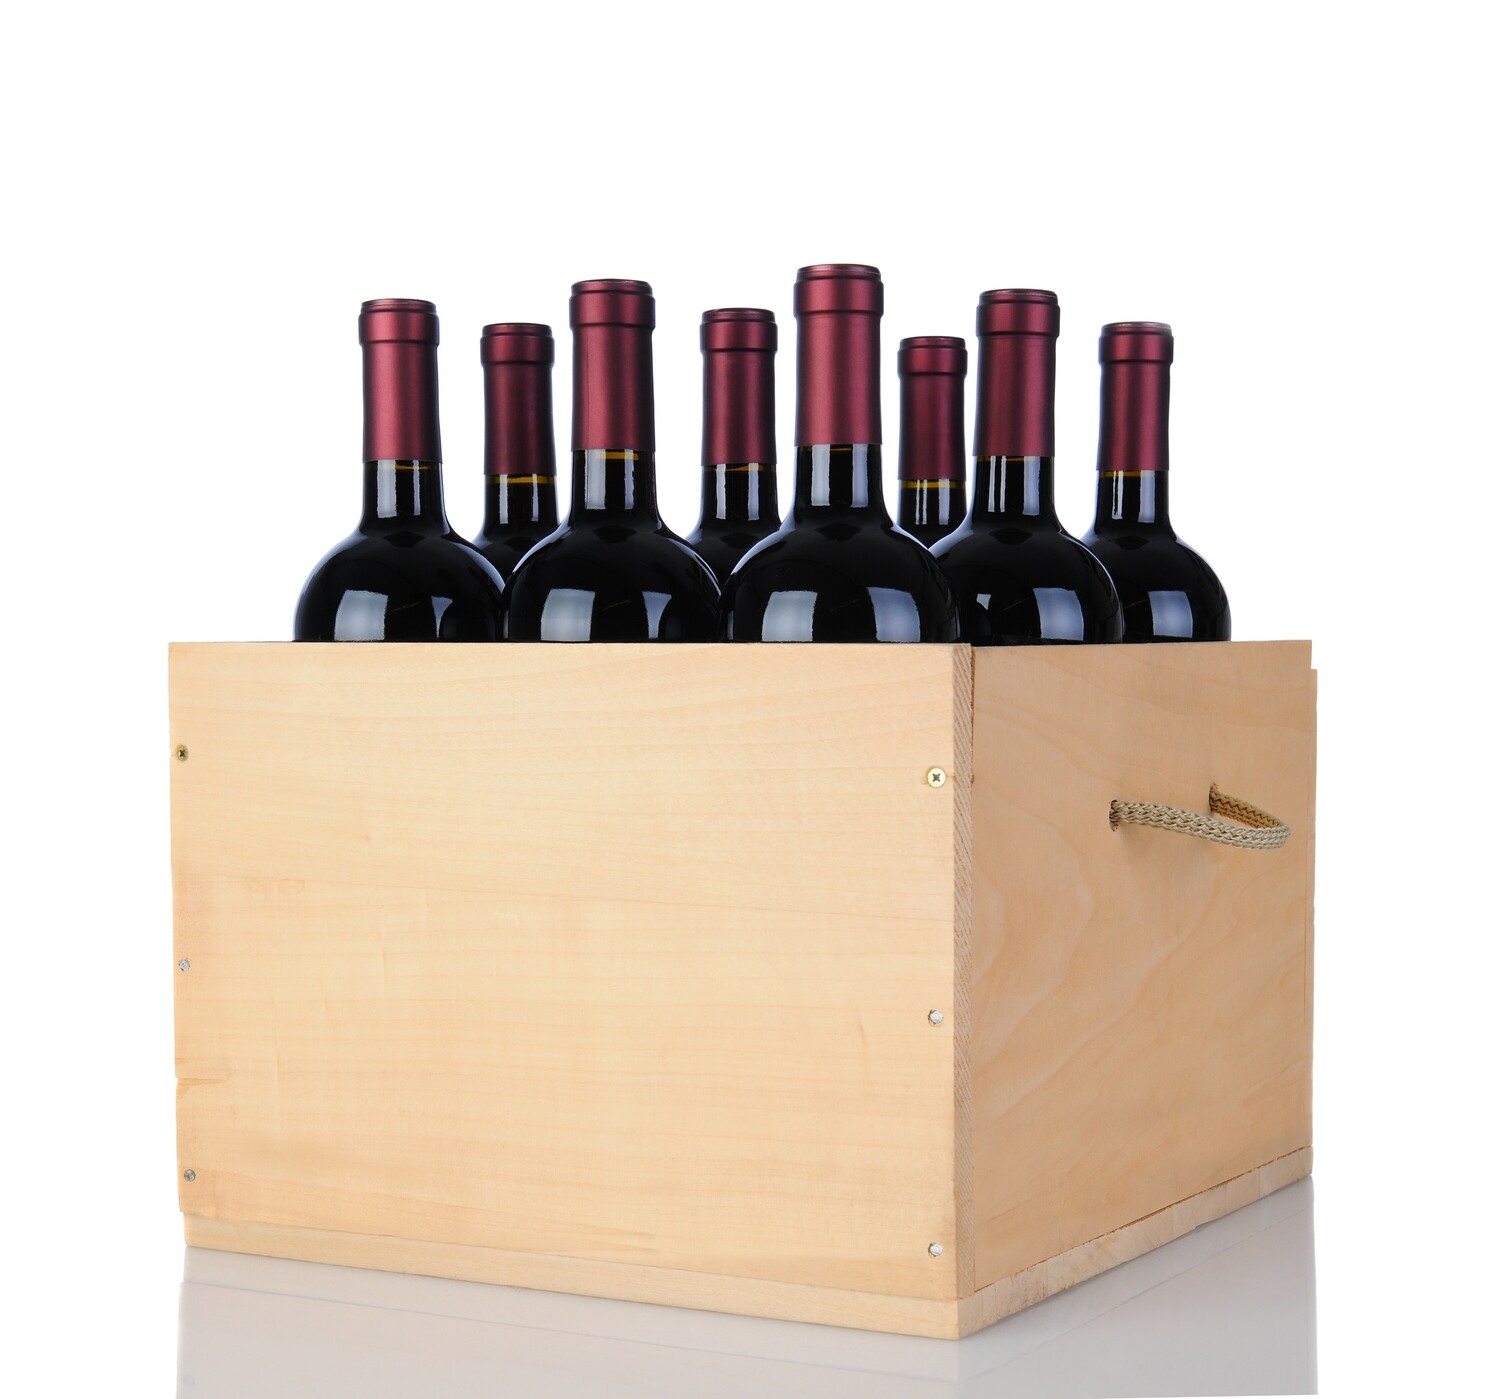 """""""A Case by Ace"""" selected by our wine buyers. Wines ranging from $15-$20 per bottle. Red/White/Rosé options available. *Curbside Pickup and DC Delivery Only*"""